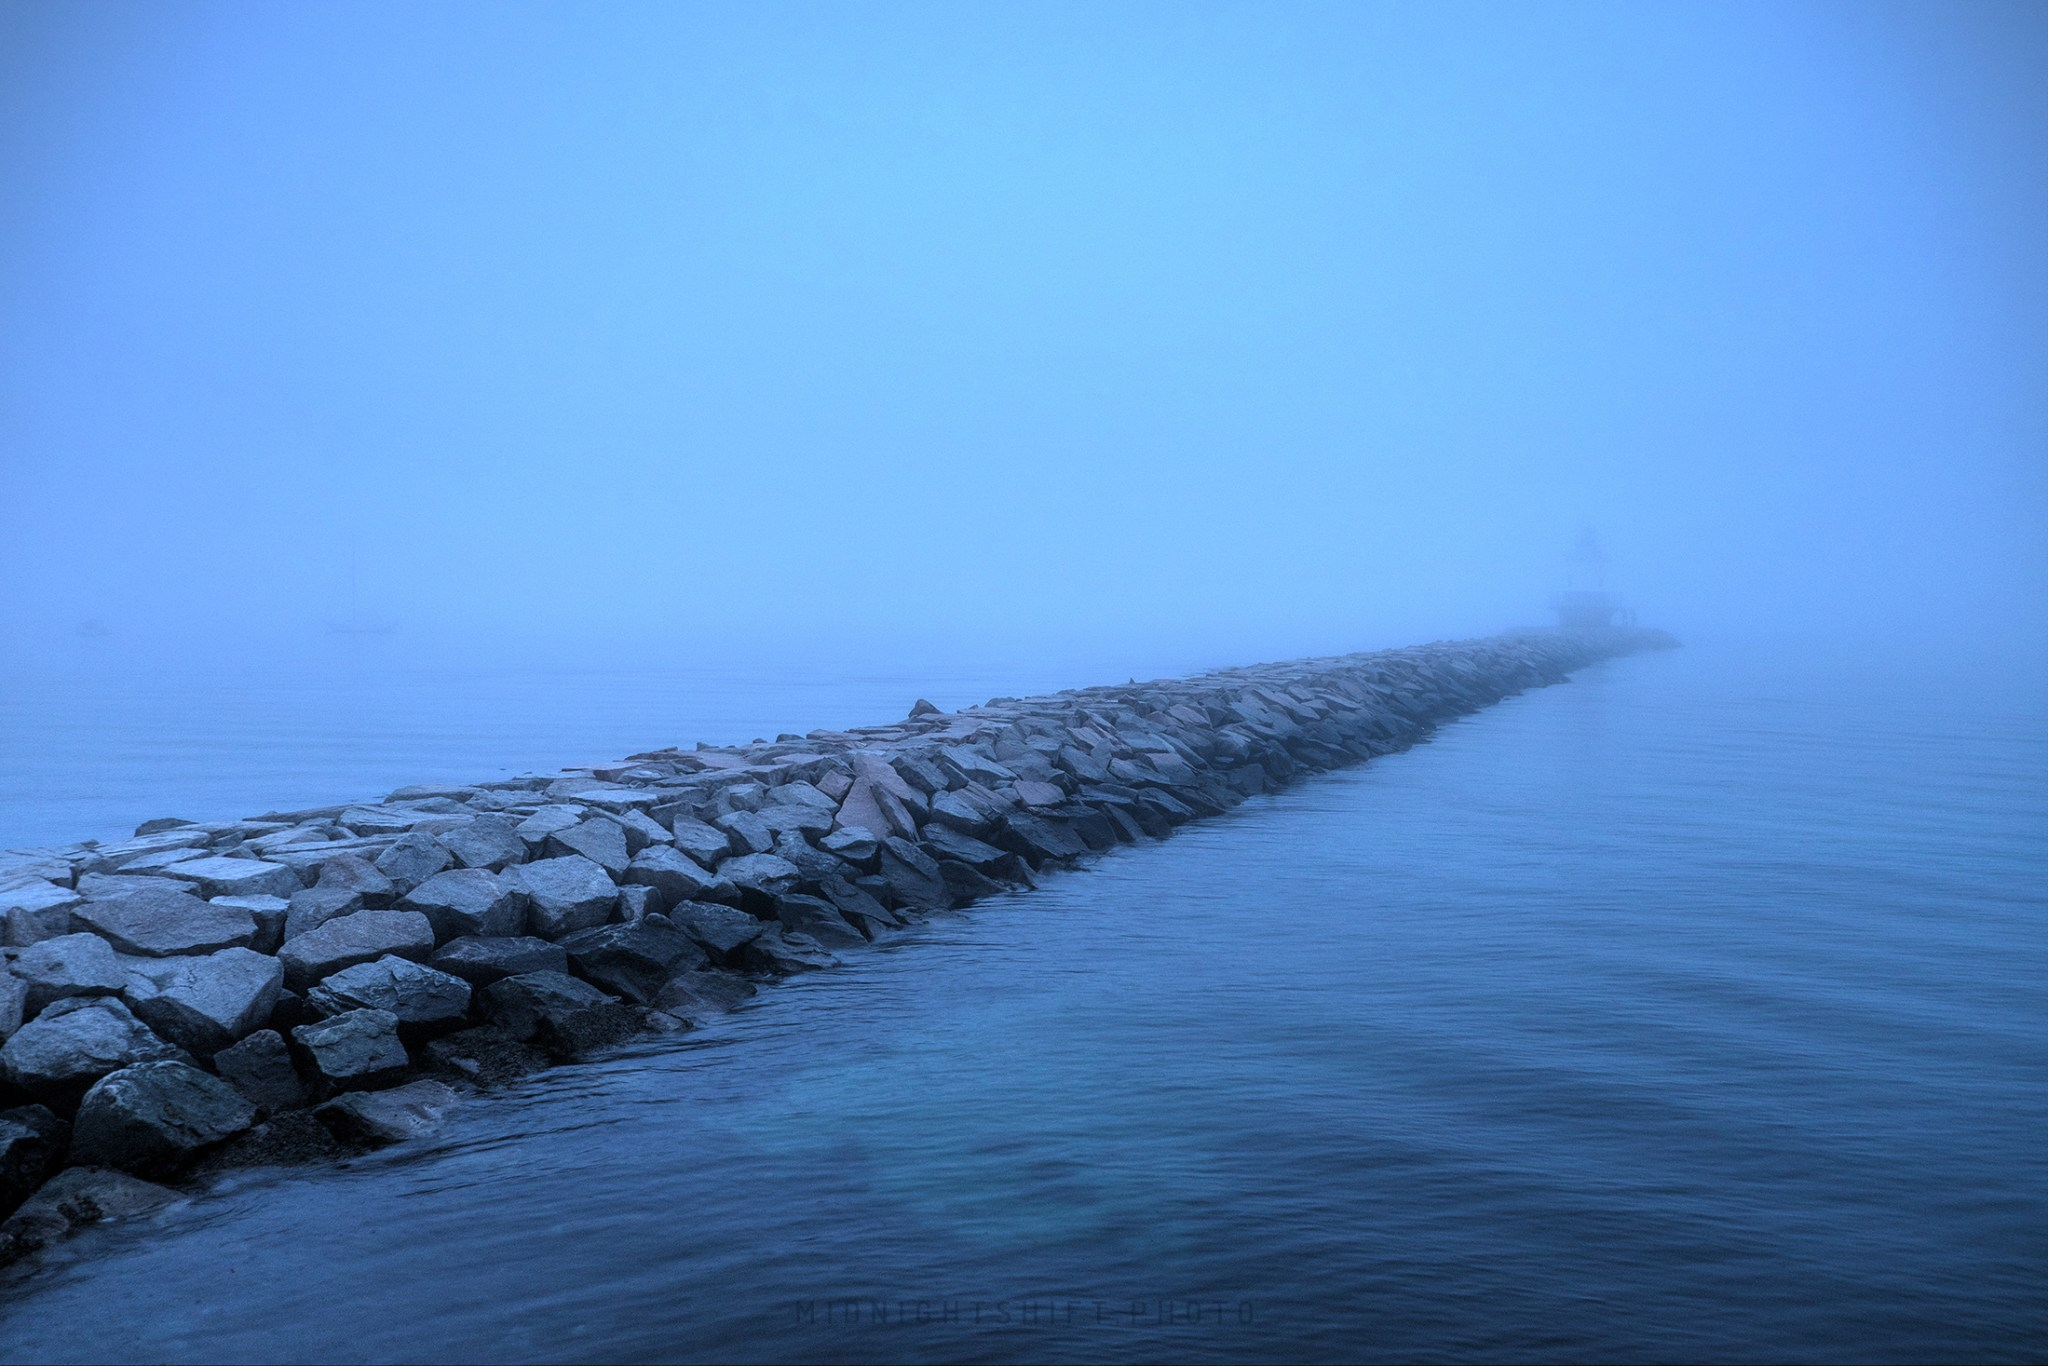 Spring point ledge lighthouse in a dense fog, south portland, maine